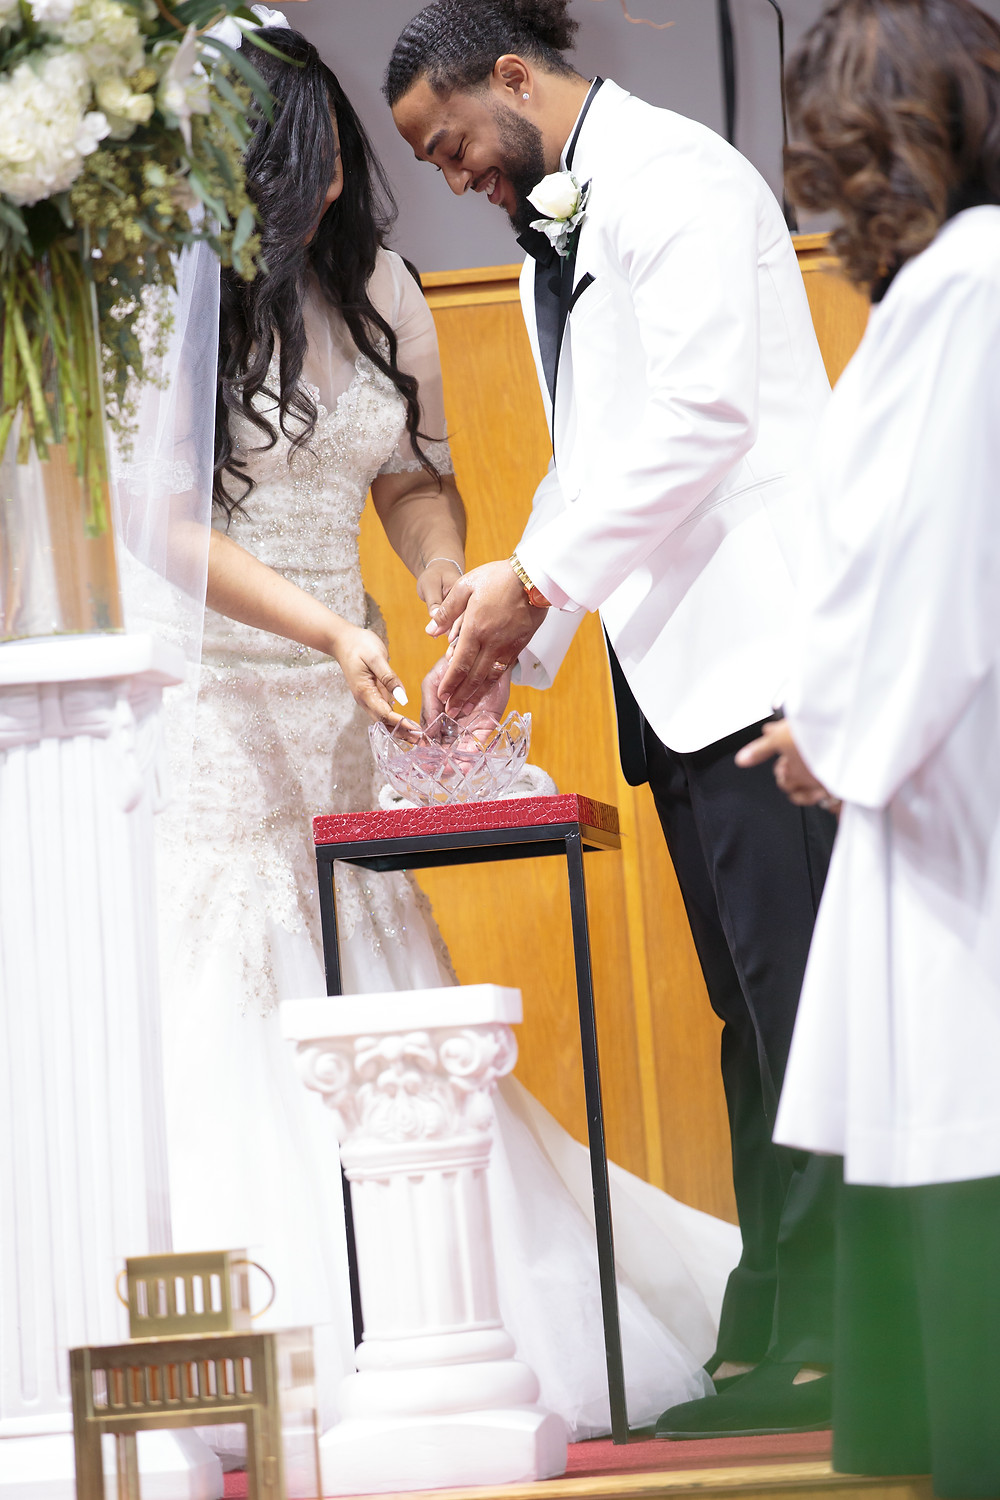 The bride and groom participate ni the hand washing ceremony during the wedding ceremony at the Alfred Street Baptist Church in Alexandria, Virginia.